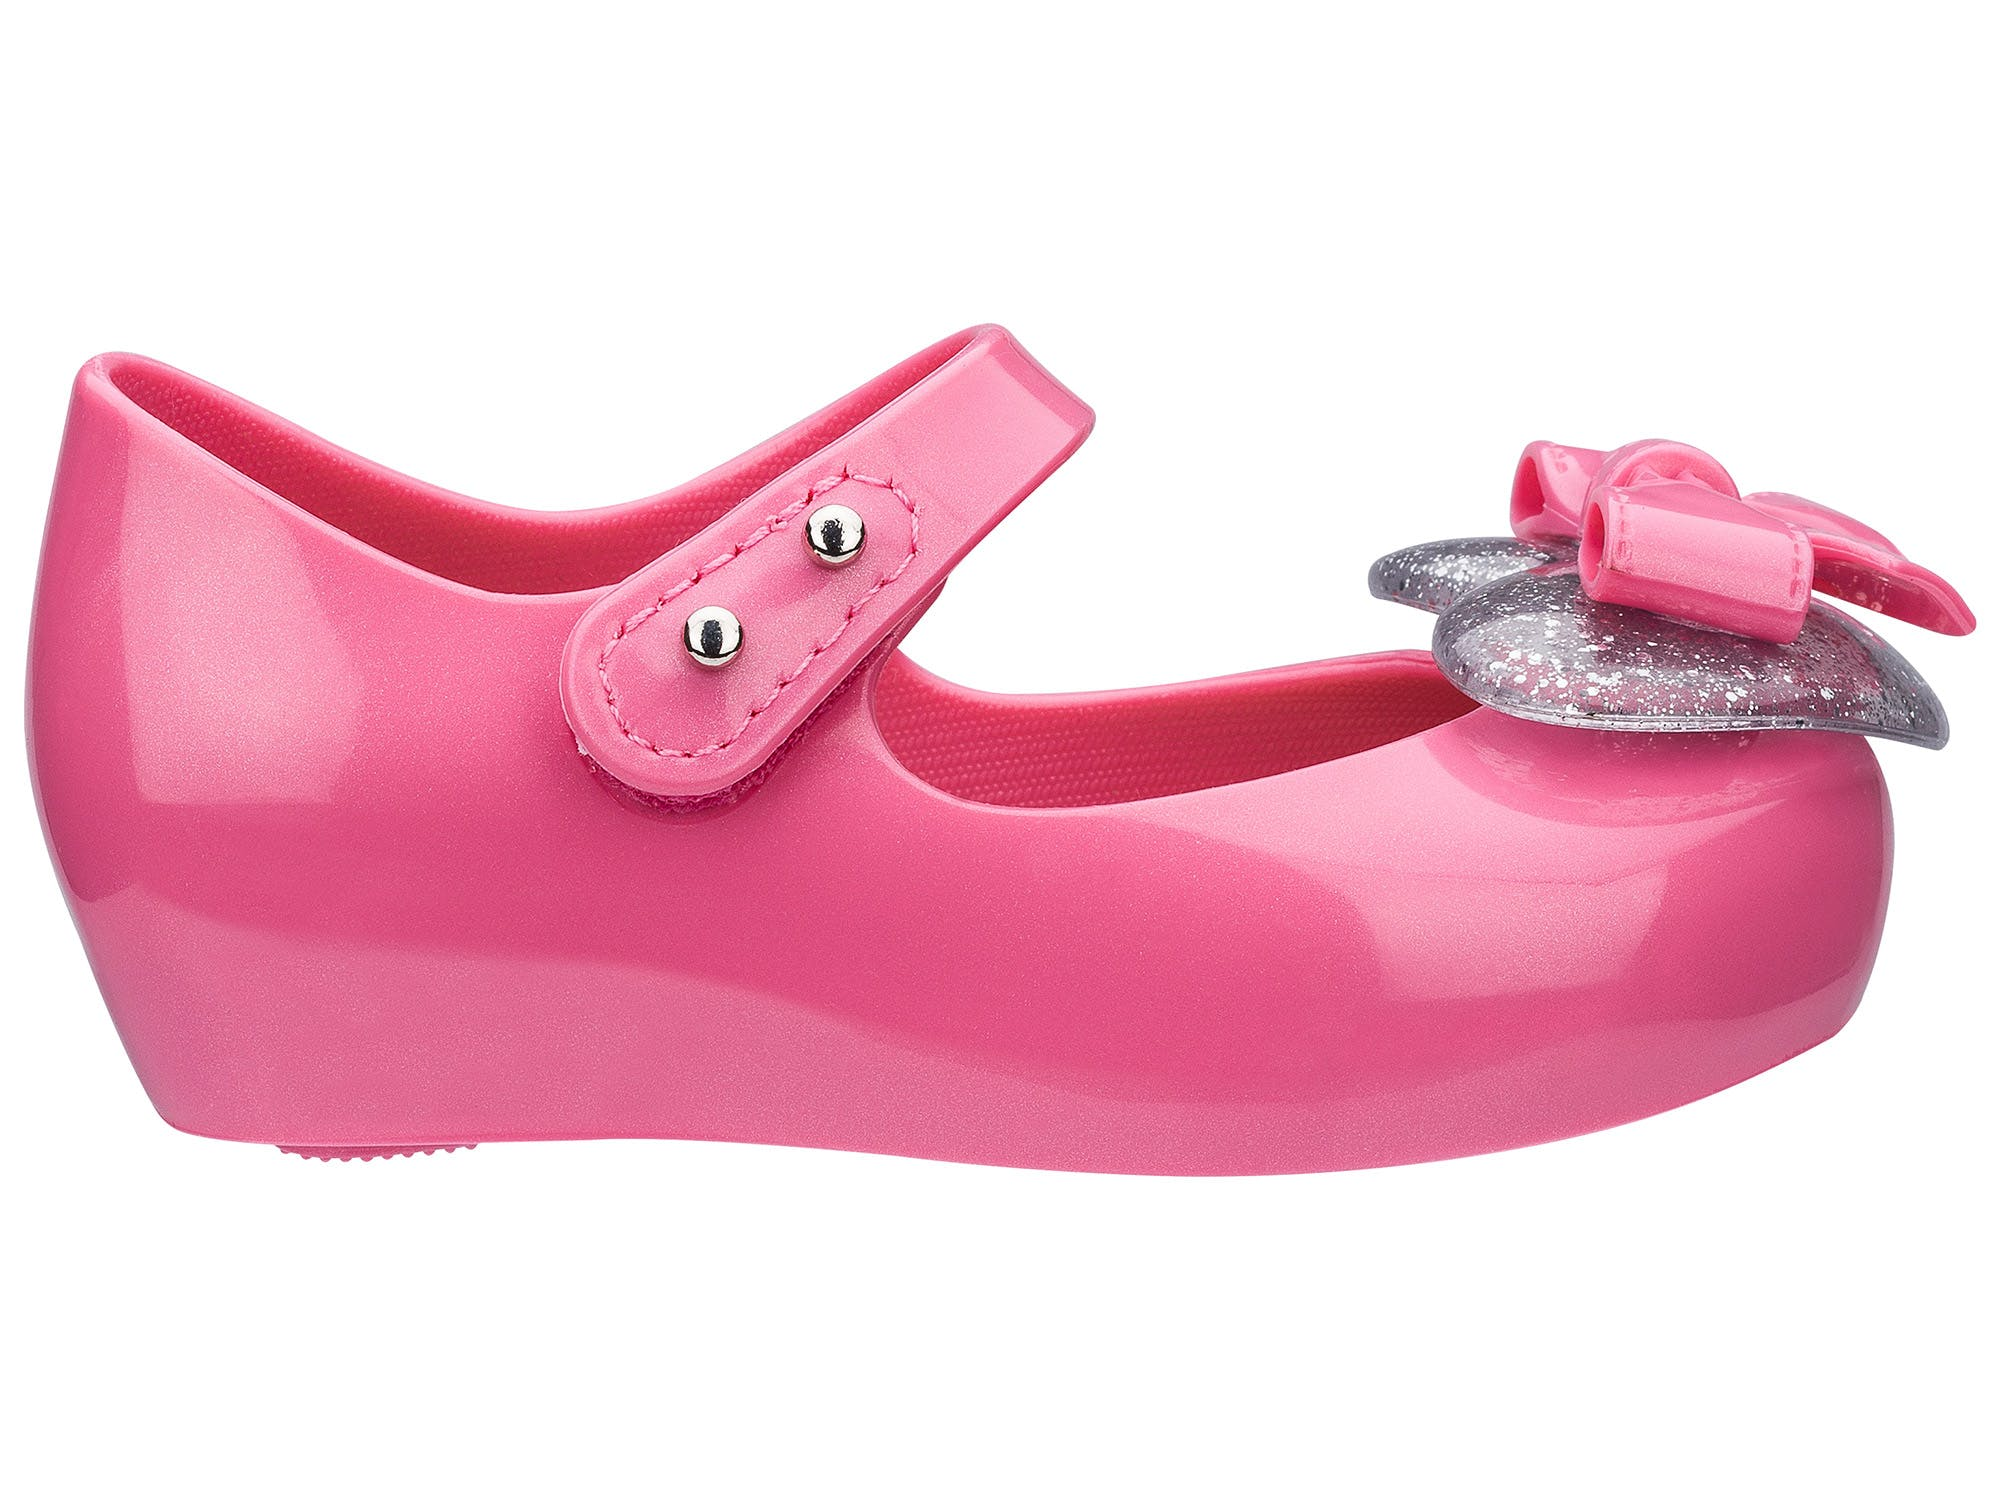 Mini Melissa Ultragirl Princess Rosa Bege